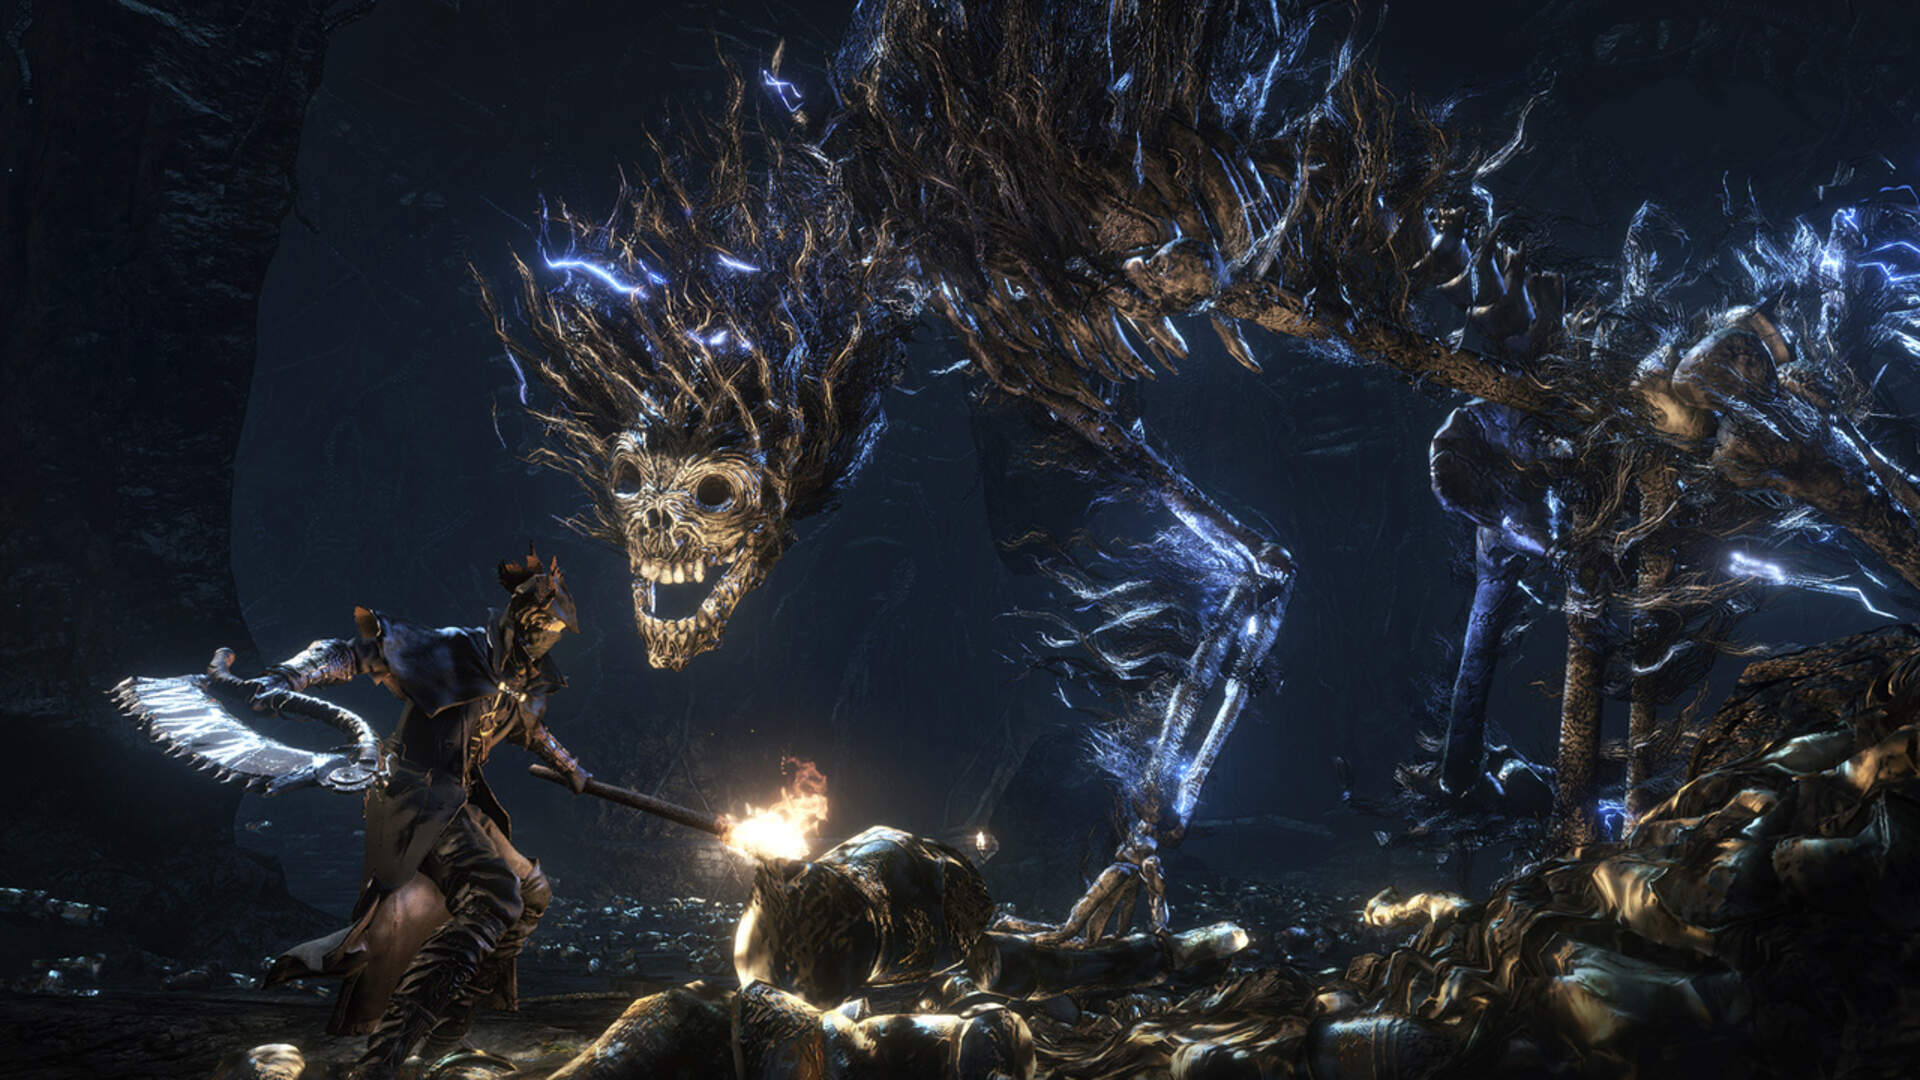 Bloodborne Bosses Ranked - The Hardest Bosses in Bloodborne